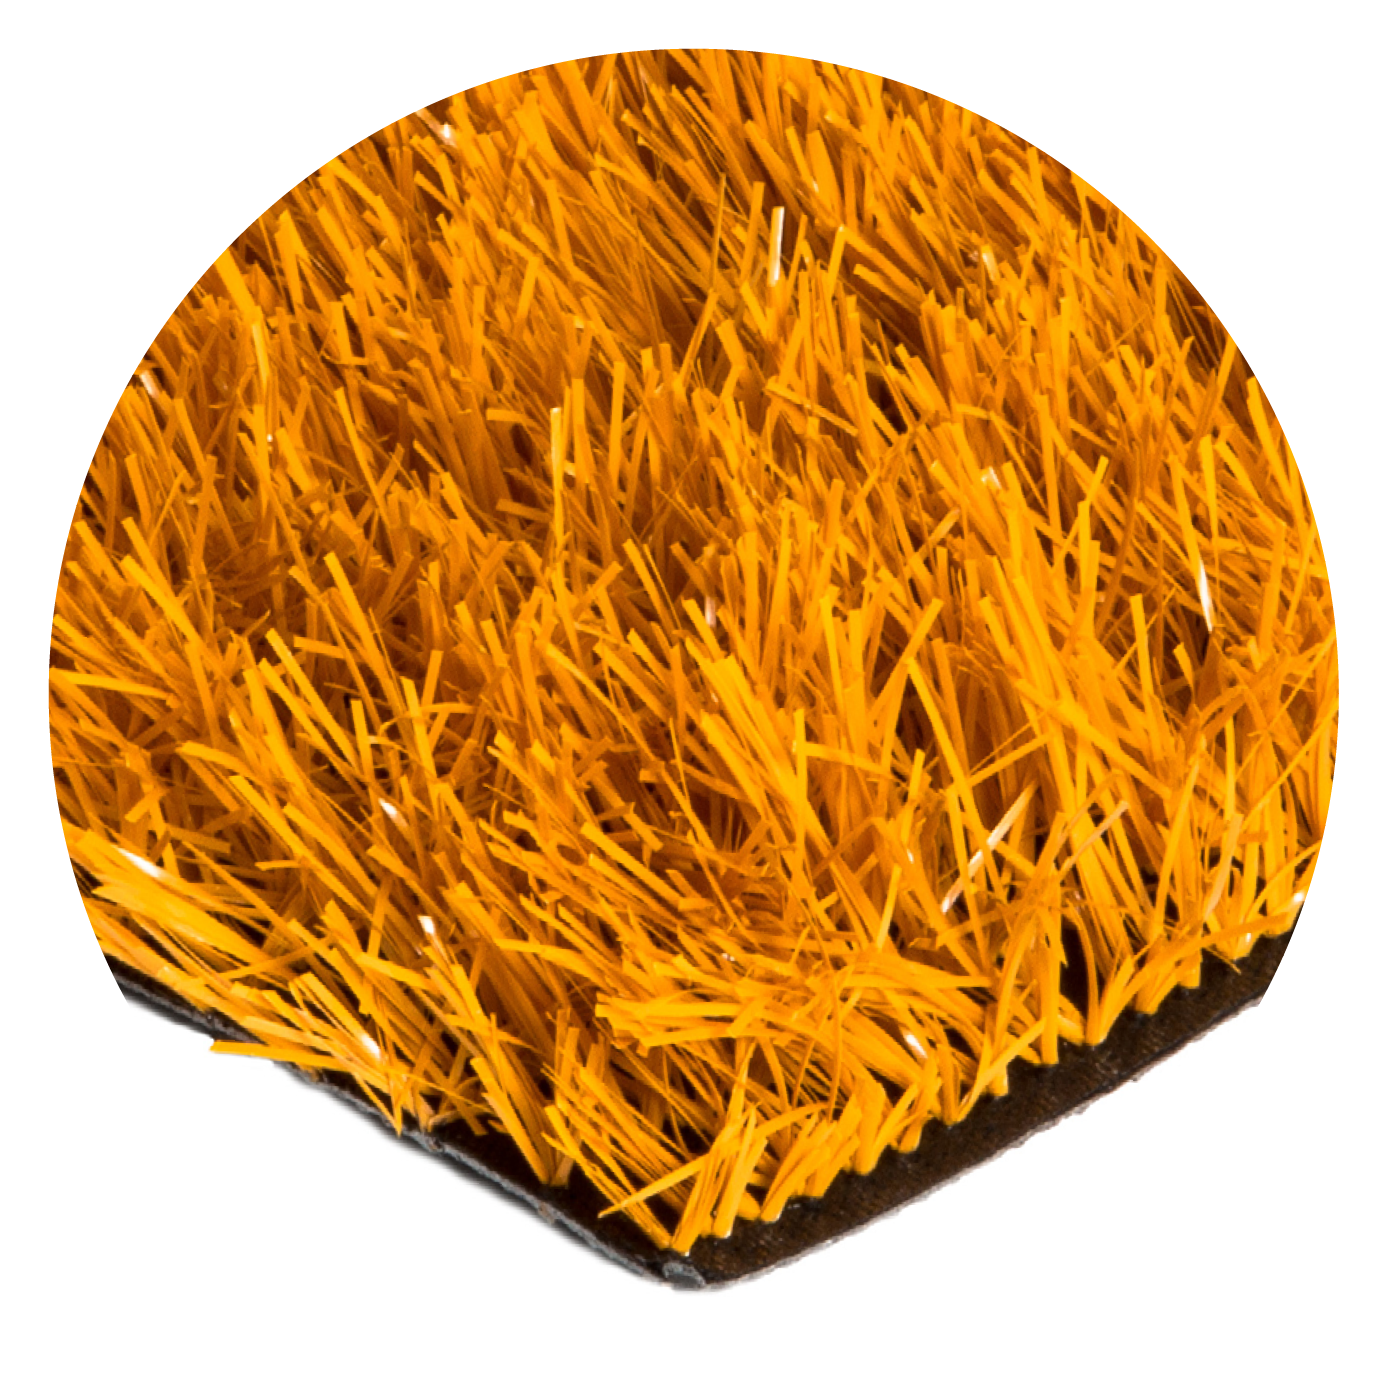 YELLOW TURF